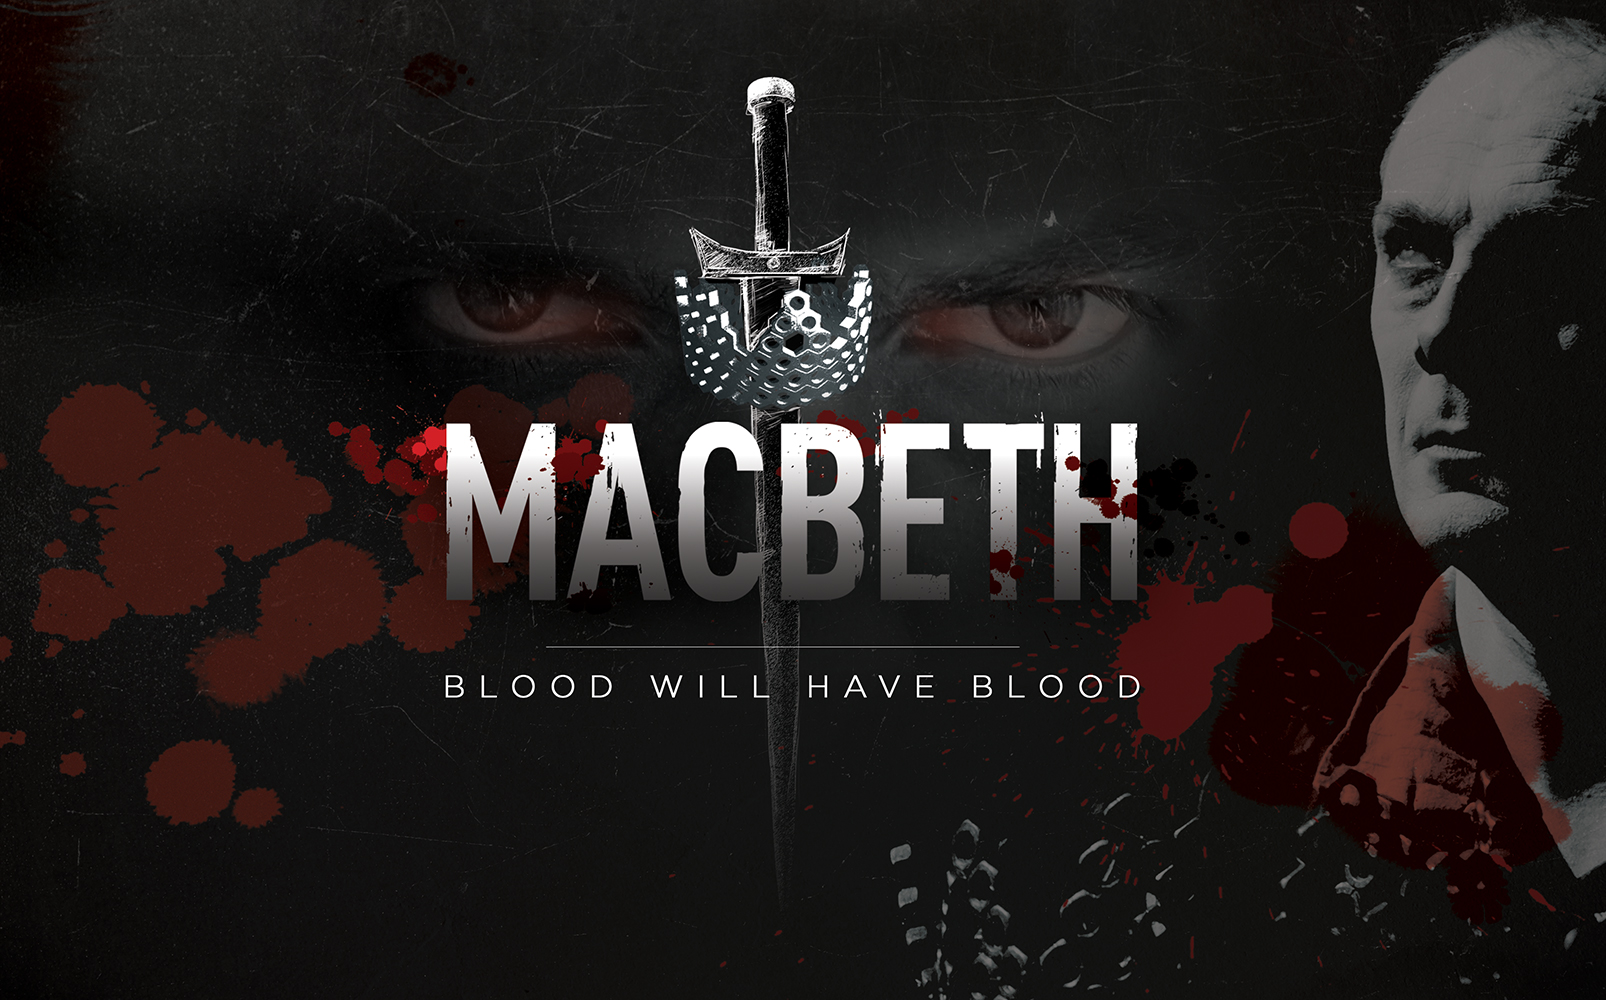 macbeth blood in macbeth To call macbeth a violent play is an understatement it begins in battle, contains the murder of men, women, and children, and ends not just with a climactic siege but the suicide of lady macbeth and the beheading of its main character, macbeth.